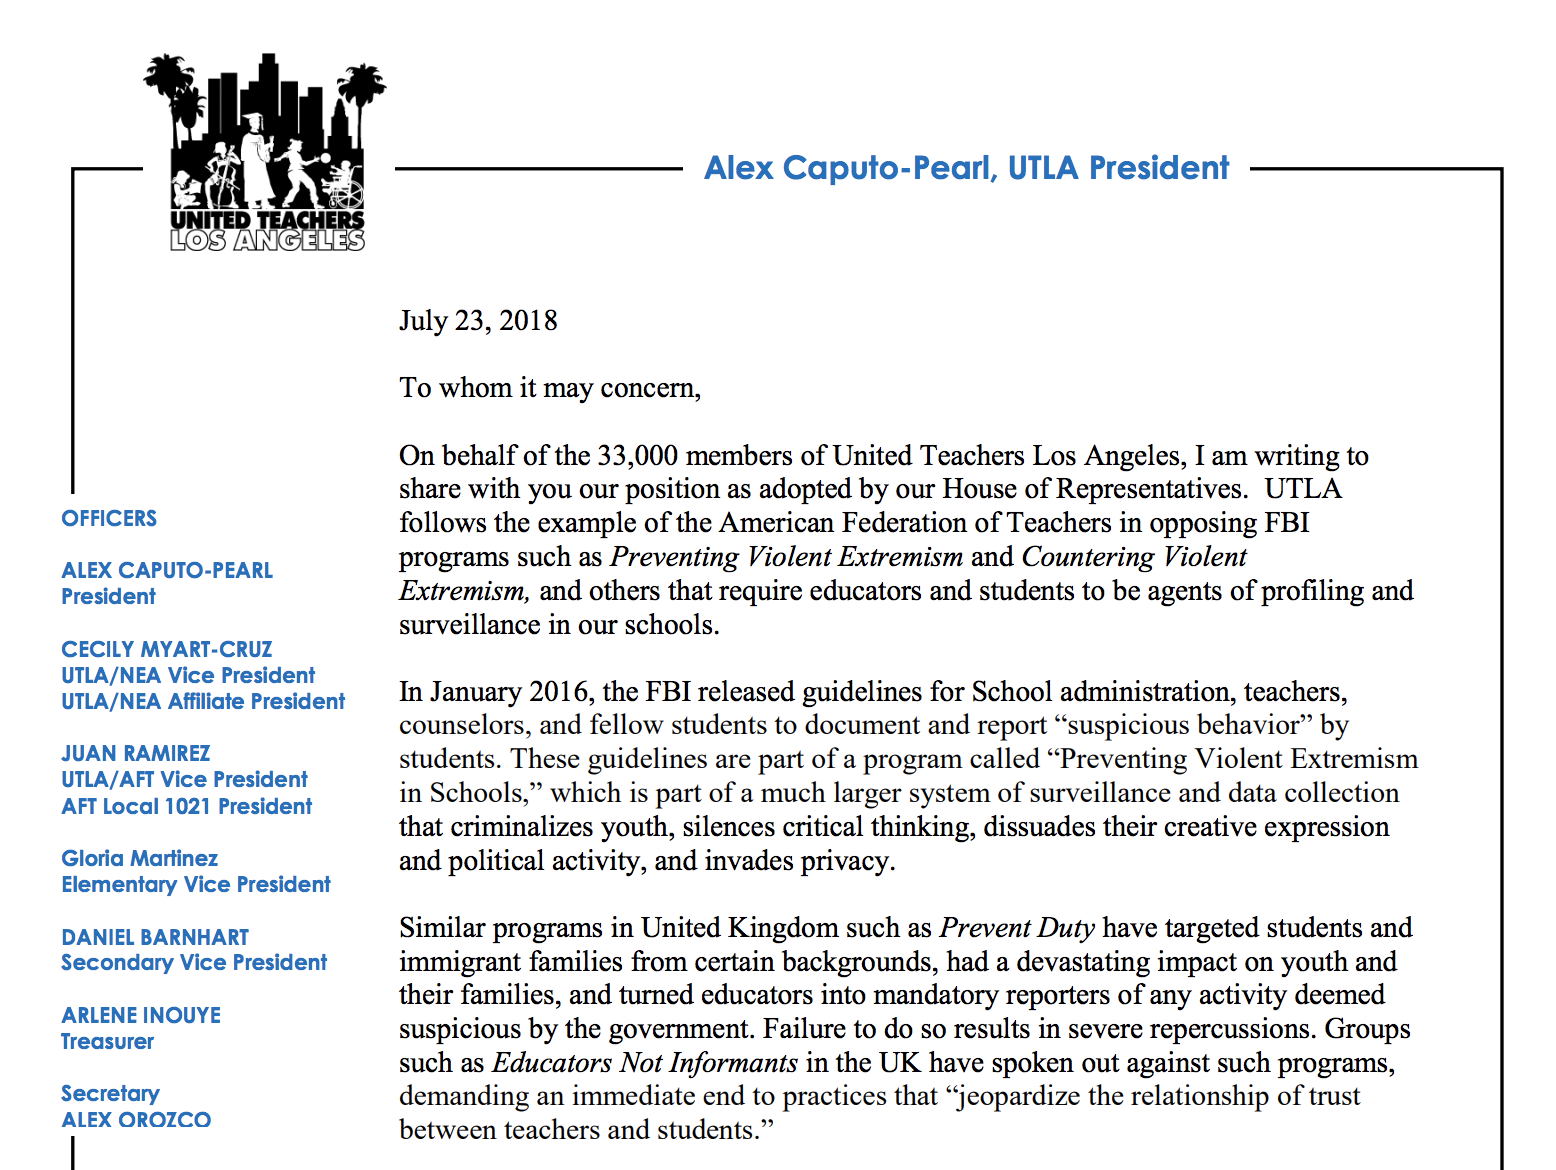 UTLA Anti-CVE Letter - The United Teachers of Los Angeles representing 33,000 teachers in Los Angeles in coalition with Stop LAPD Spying Coalition,Palestinian Youth Movement, Black Students Union and Immigrant Youth Coalition released a letter firmly opposing CVE.